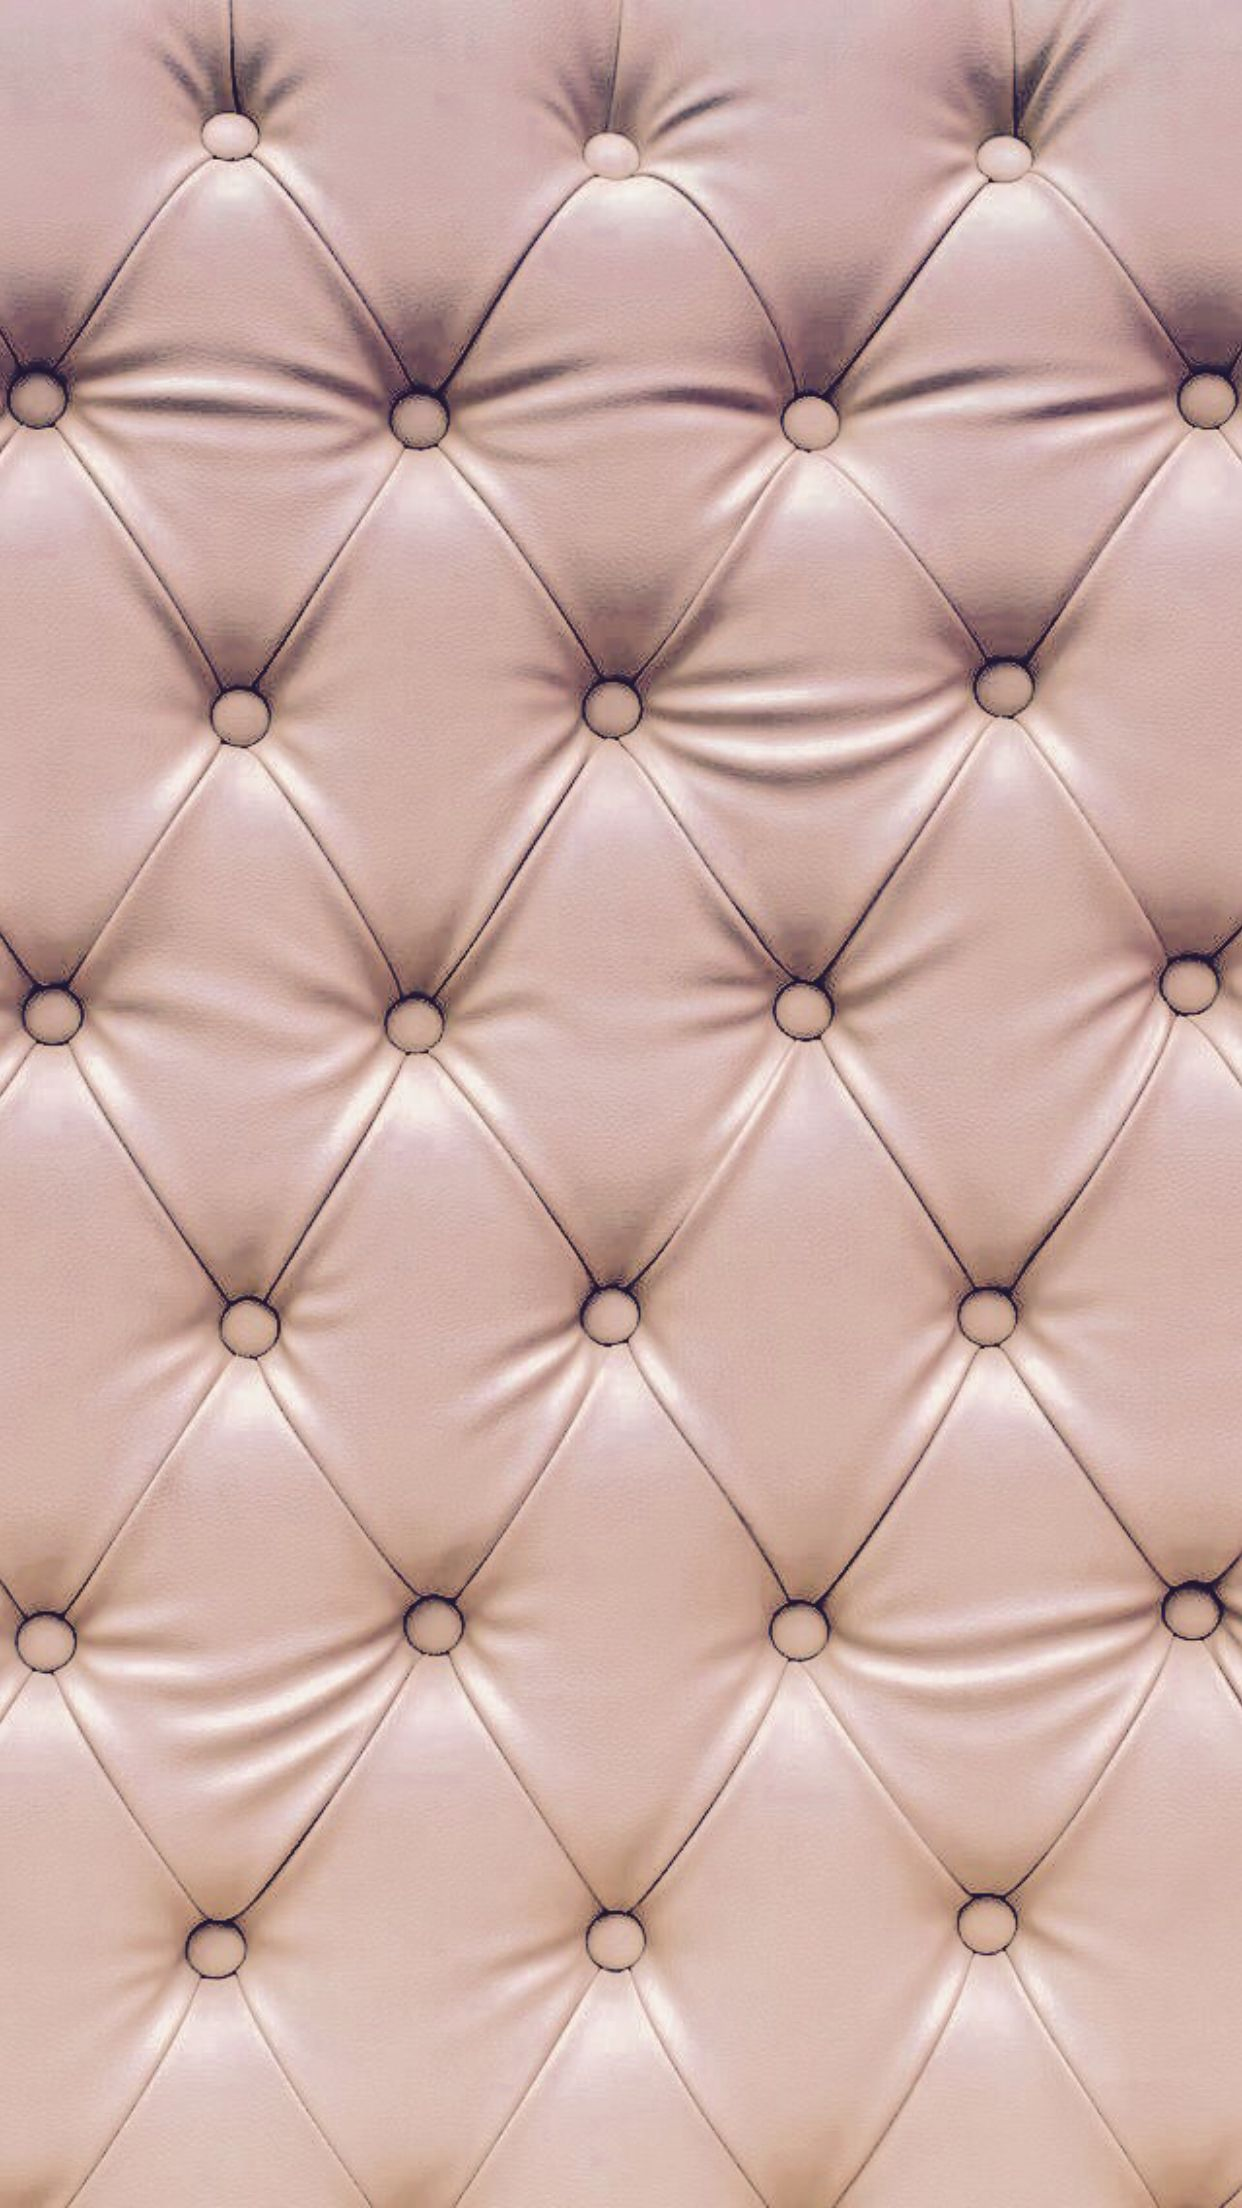 Chanel Iphone 6s Plus Wallpaper Rose Rose Gold Wallpaper Gold Wallpaper Iphone Wallpaper